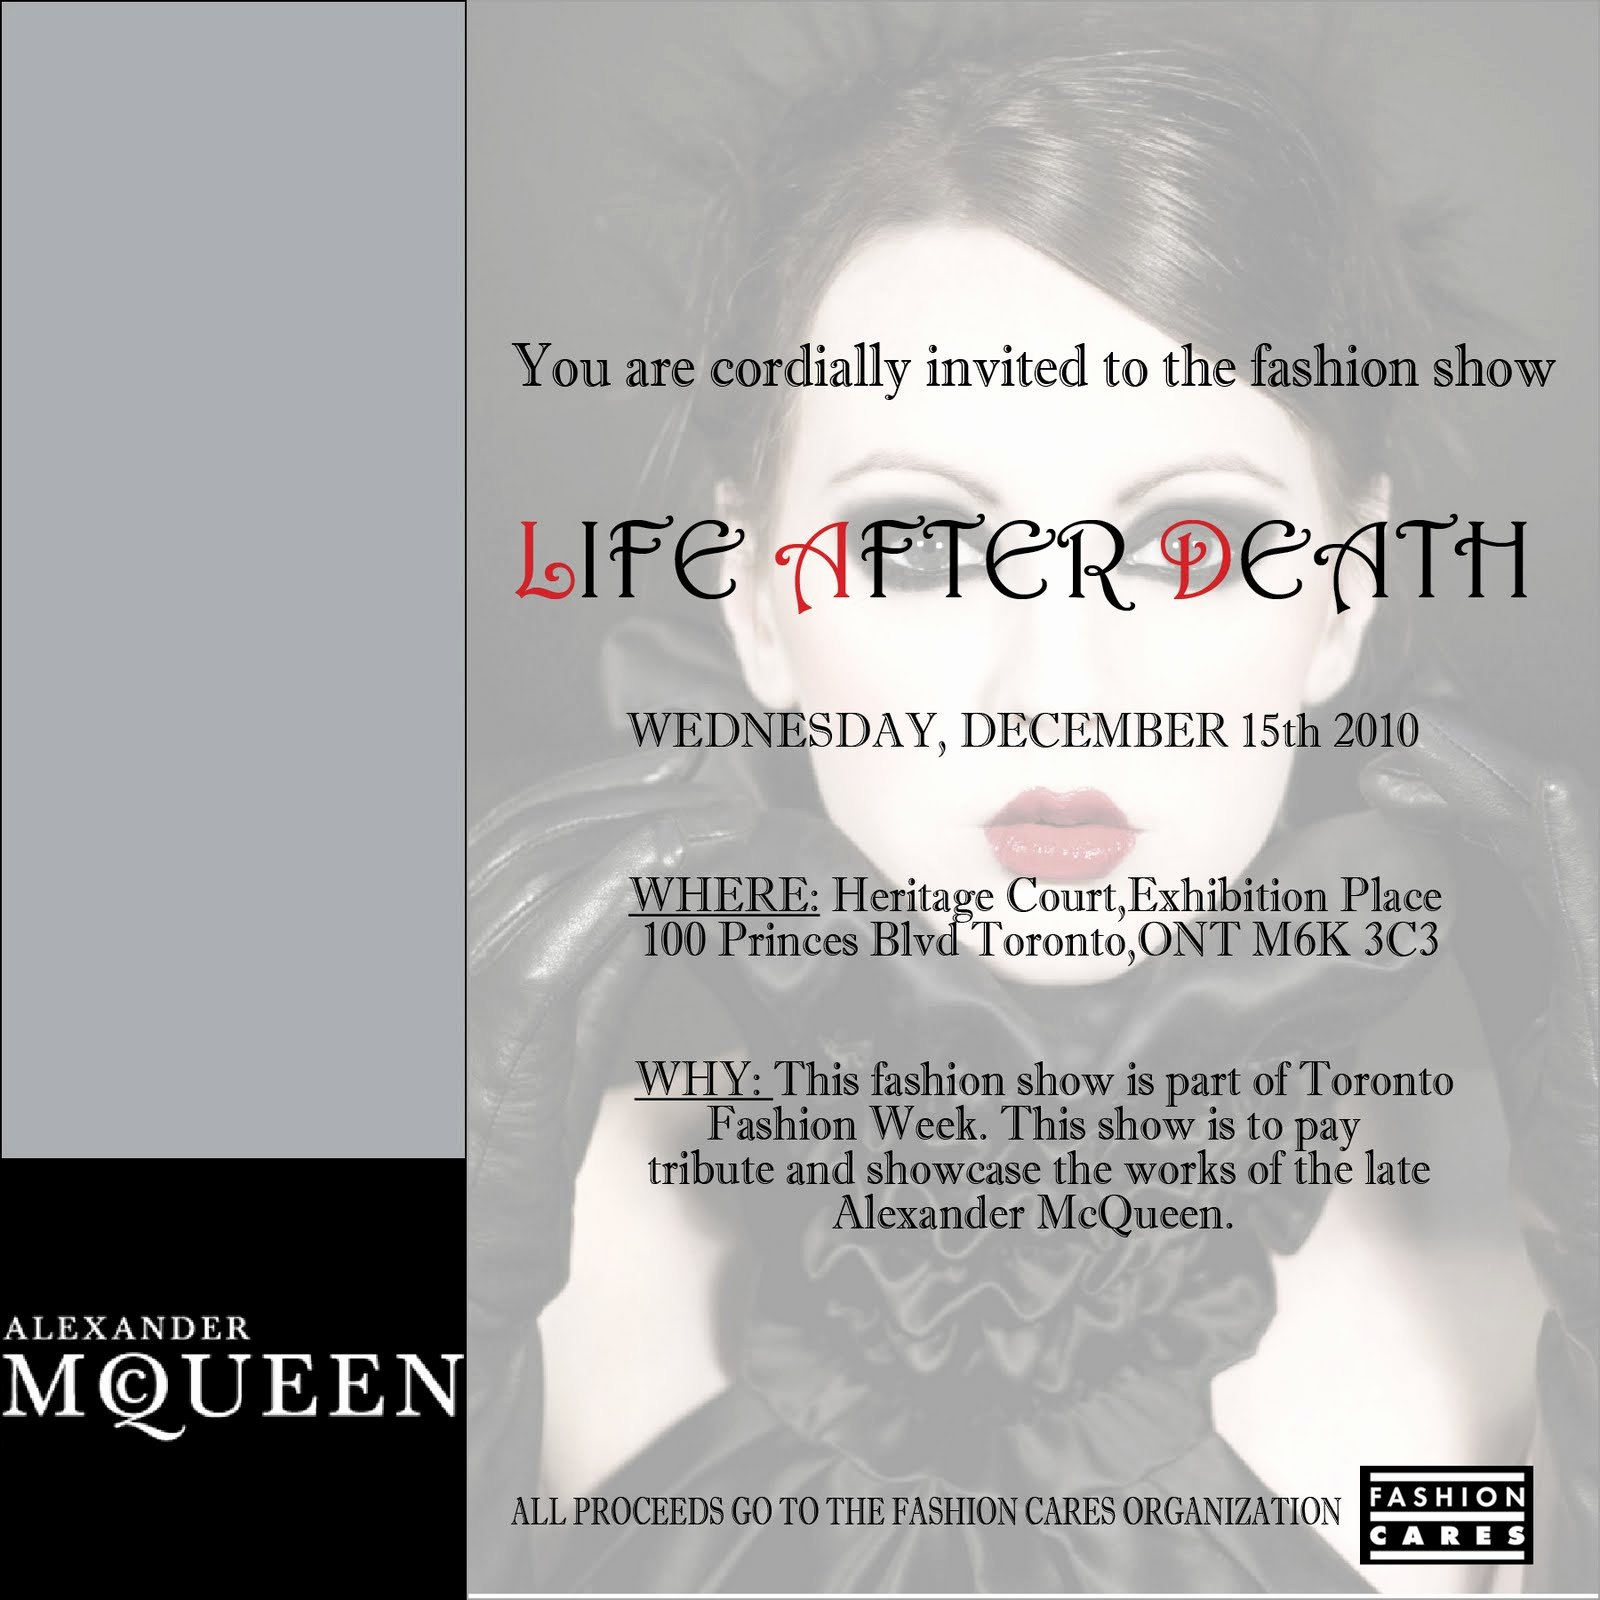 Fashion Show Invitations Templates Lovely What is Fashion Show Invitation Template Sitestatr